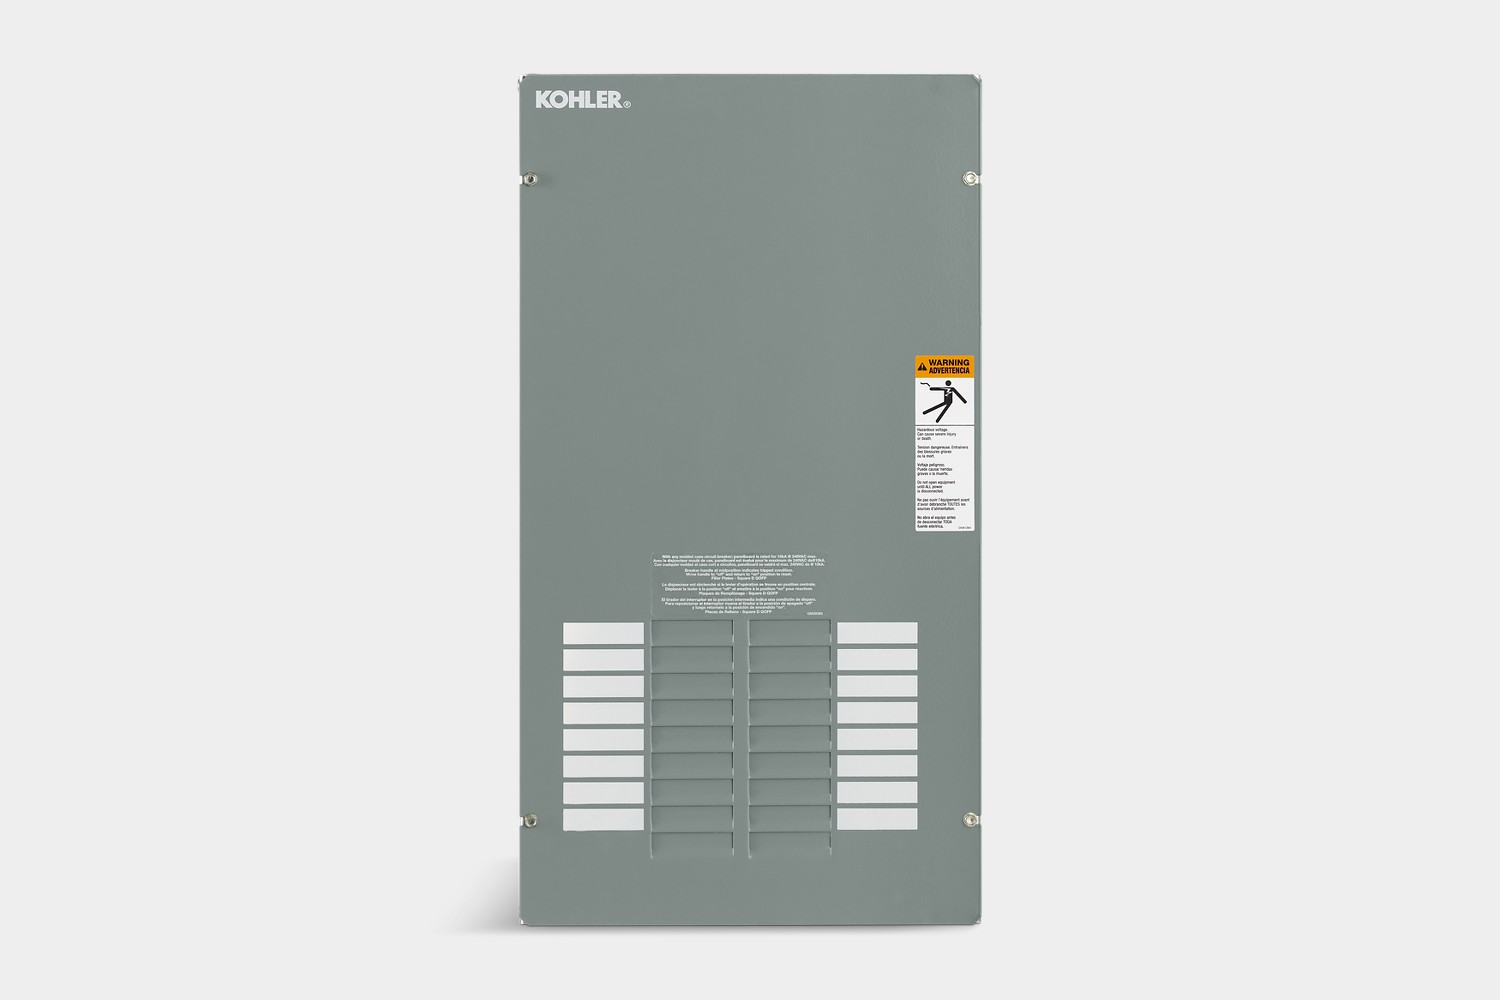 Kohler Generators Rxt Ats Indoor 100 Amp 16 Space Load Center Details About Automatic Transfer Switch Controller Build Your